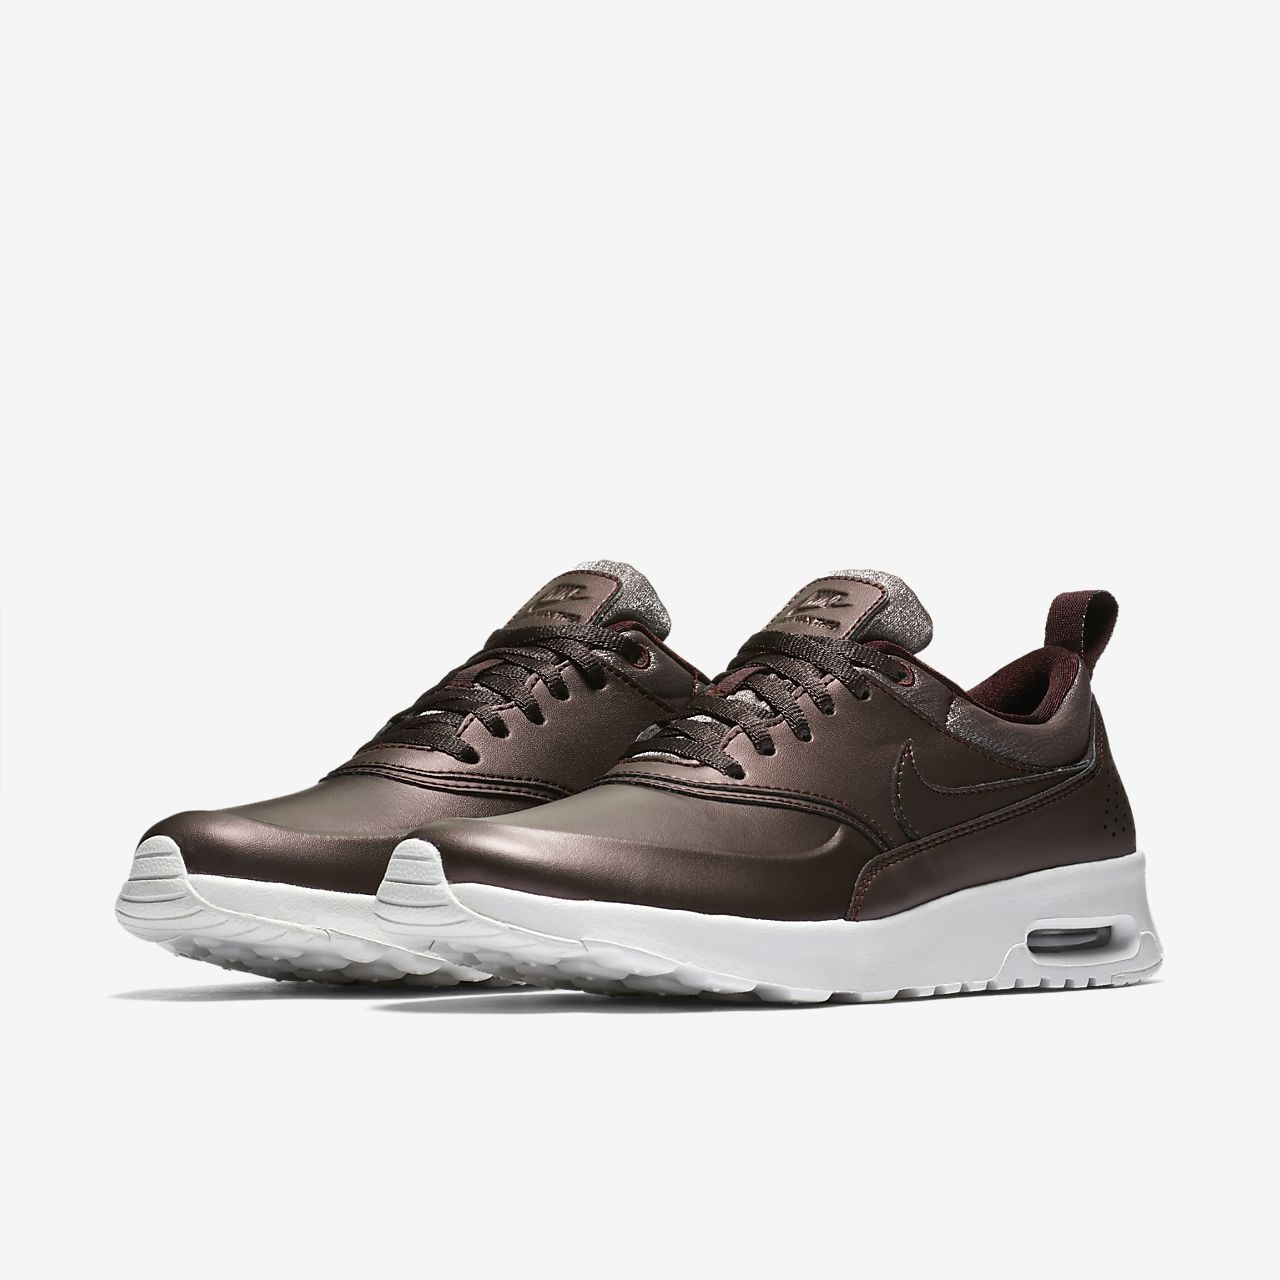 nike air max thea premium leather - dames schoenen